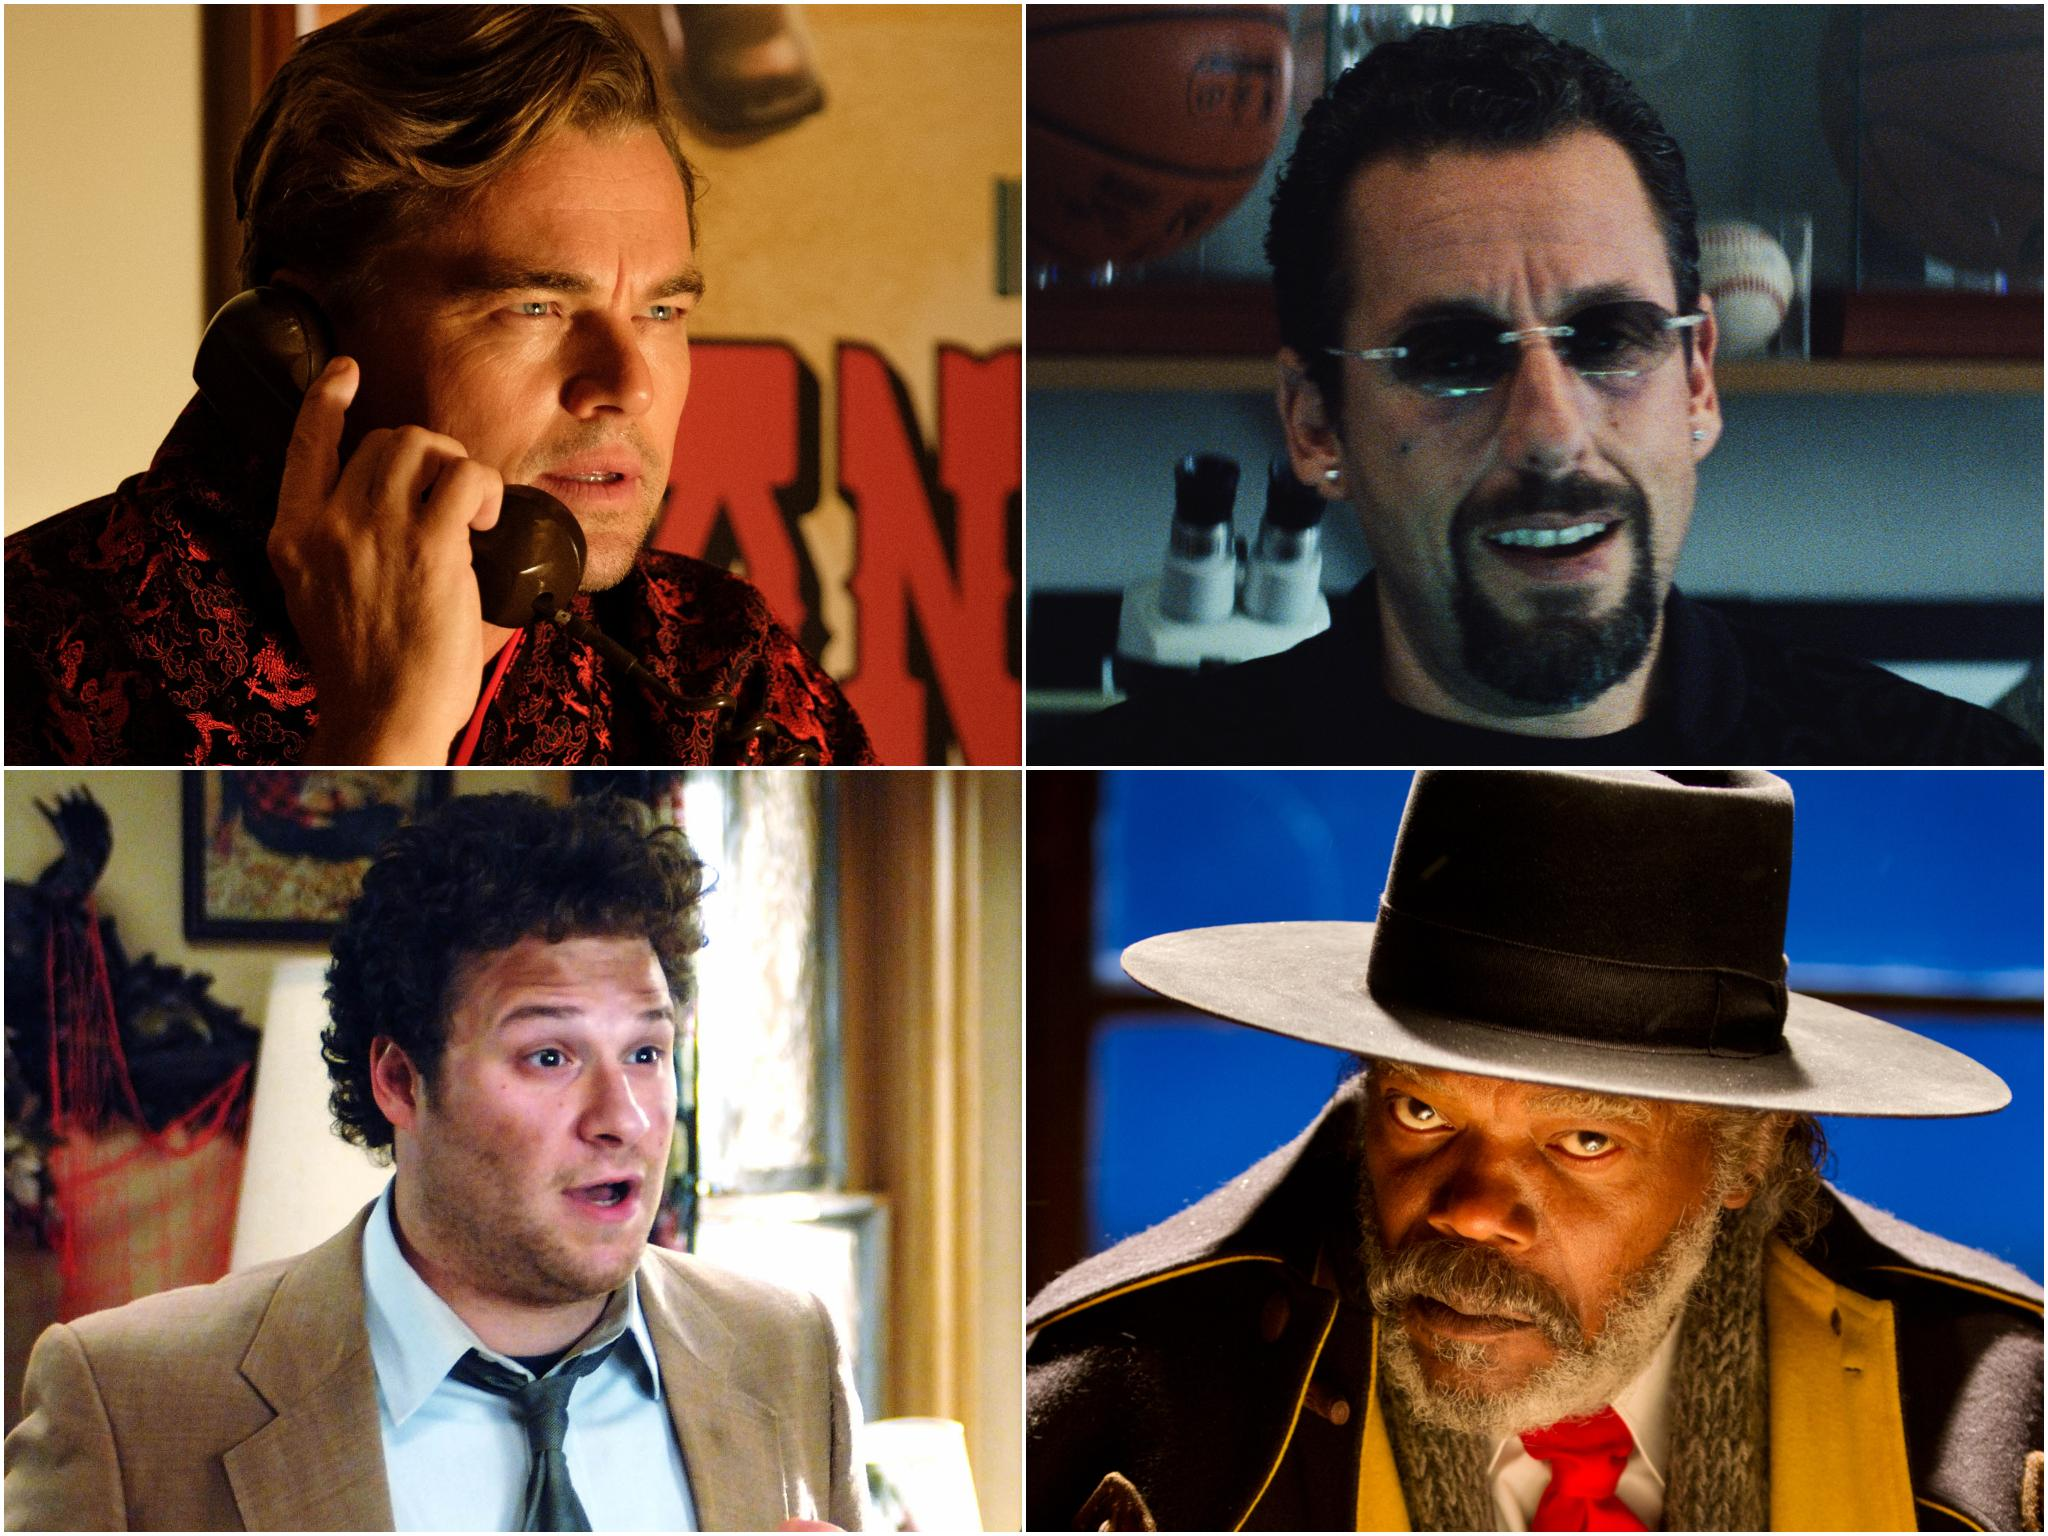 10 actors who have dropped the most swear words in films